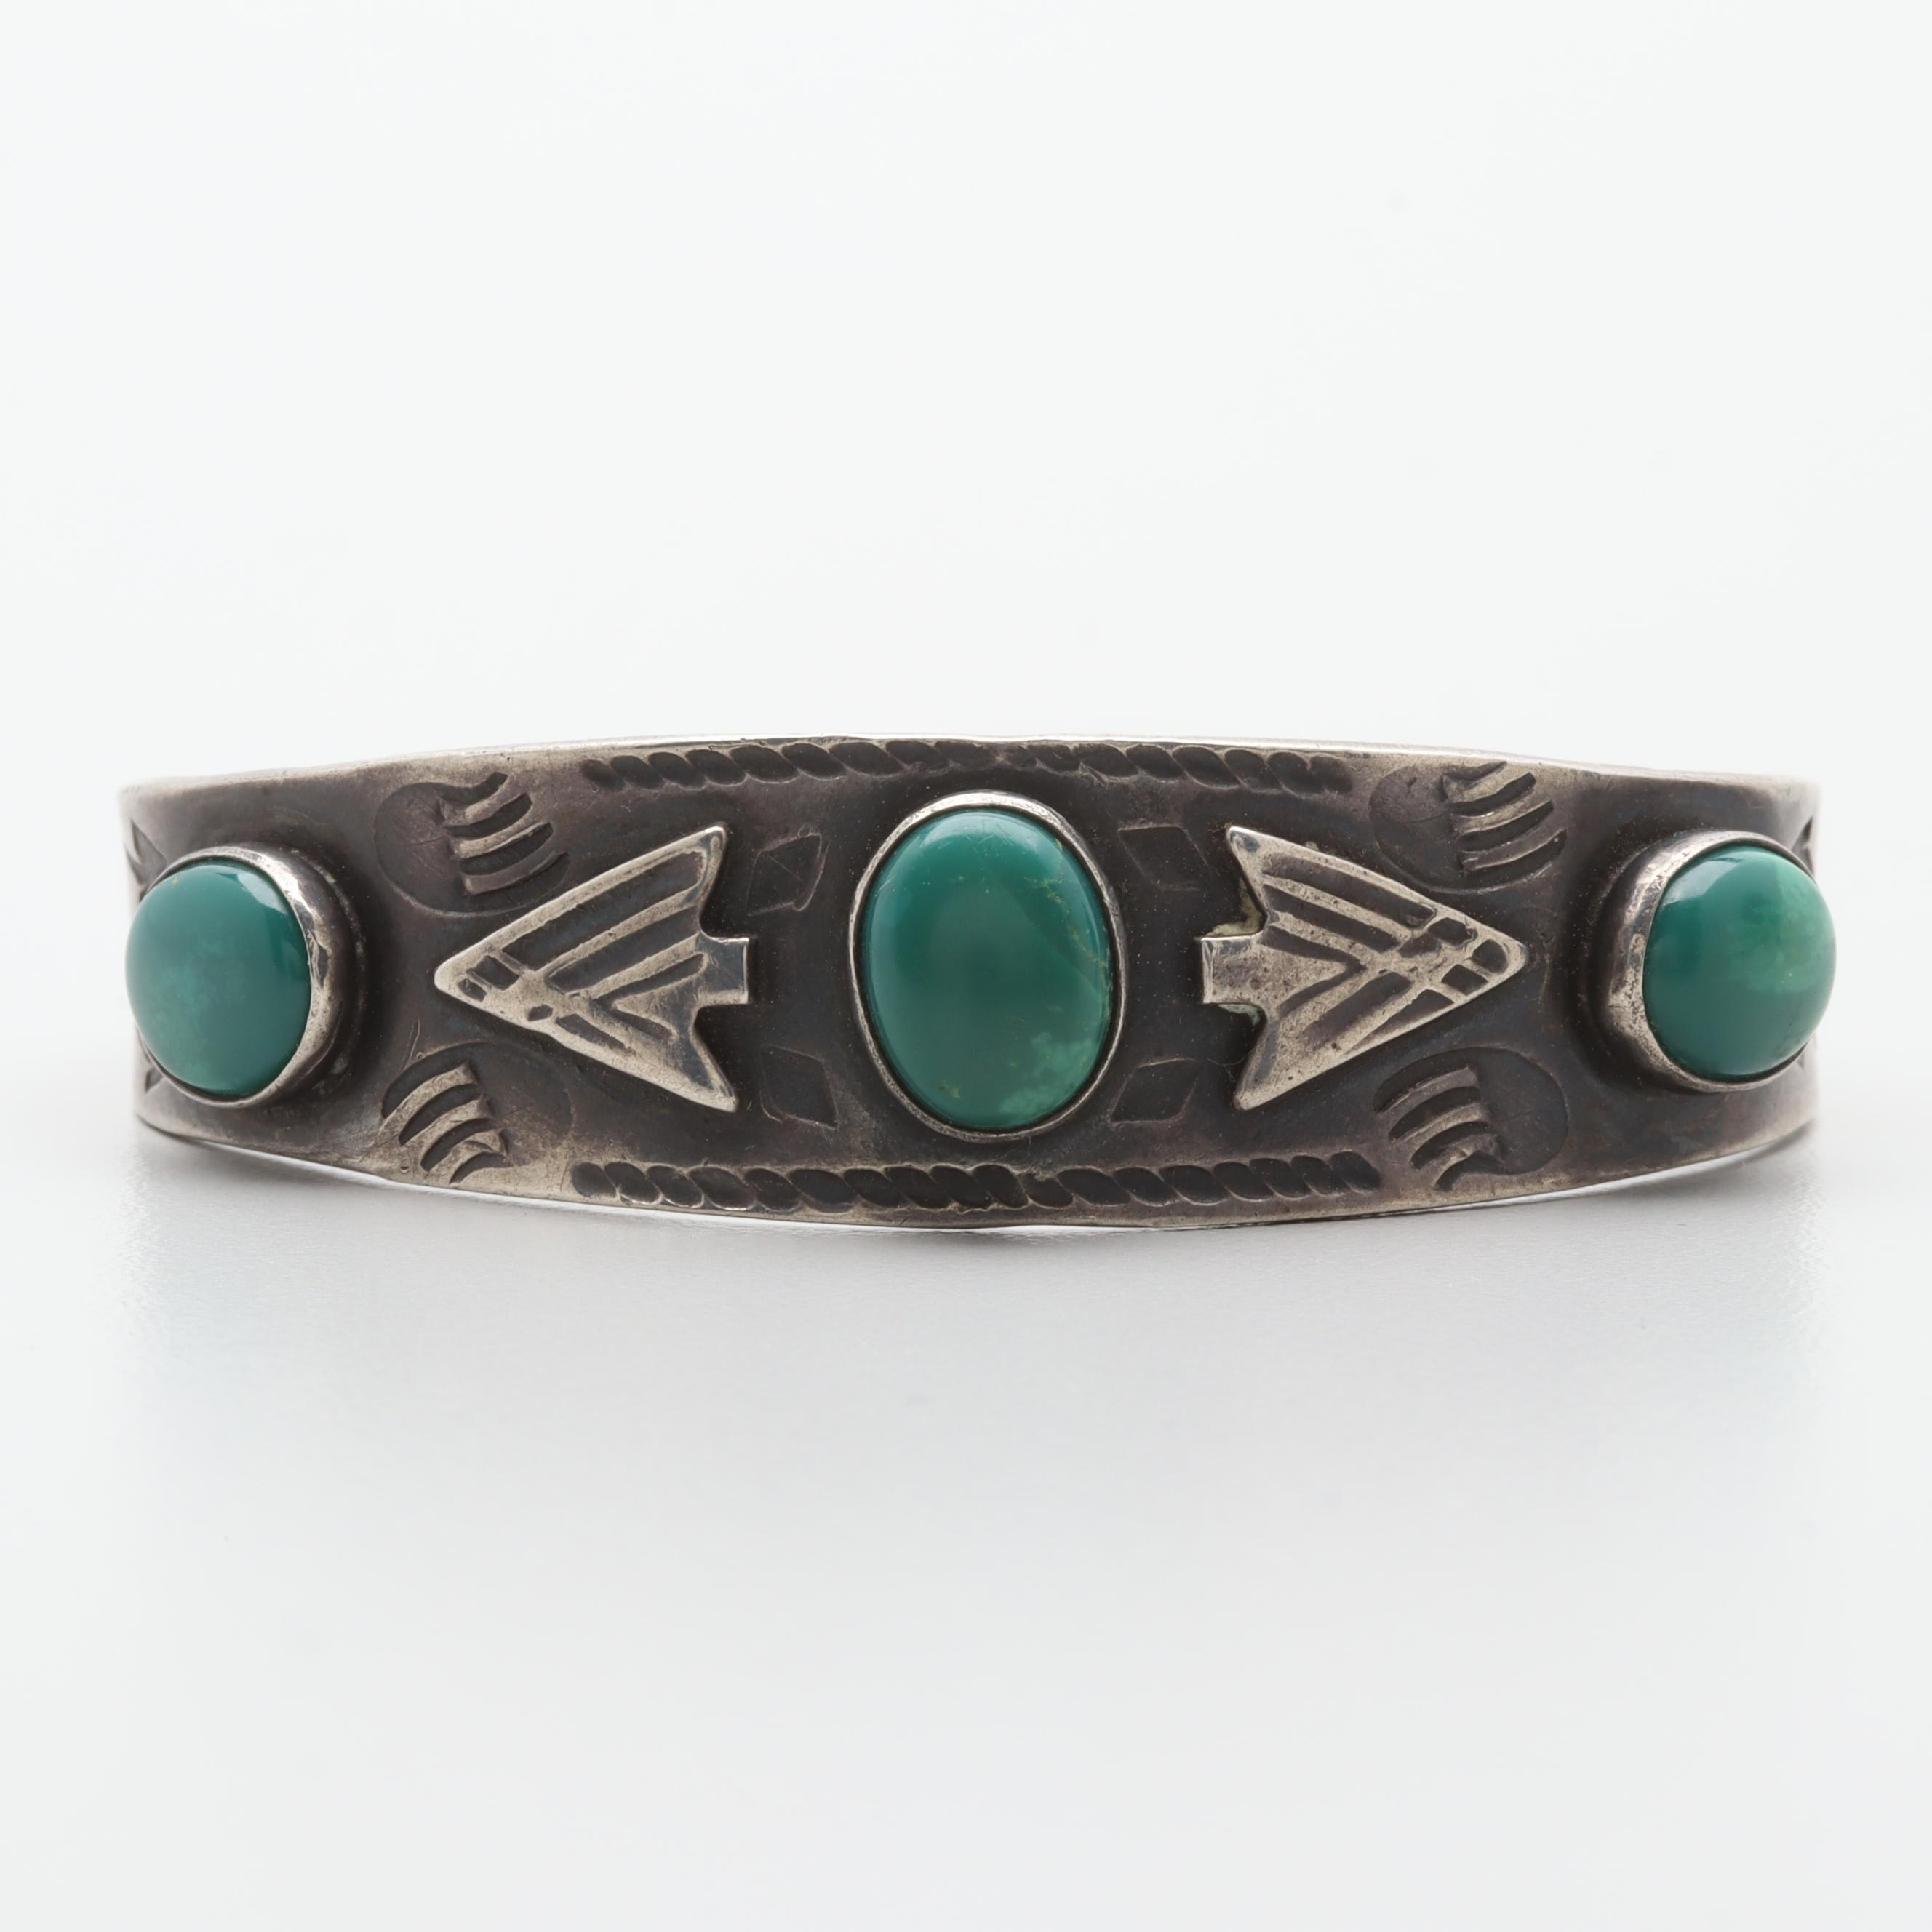 Vintage Southwestern Style Sterling Silver Green Turquoise Cuff Bracelet